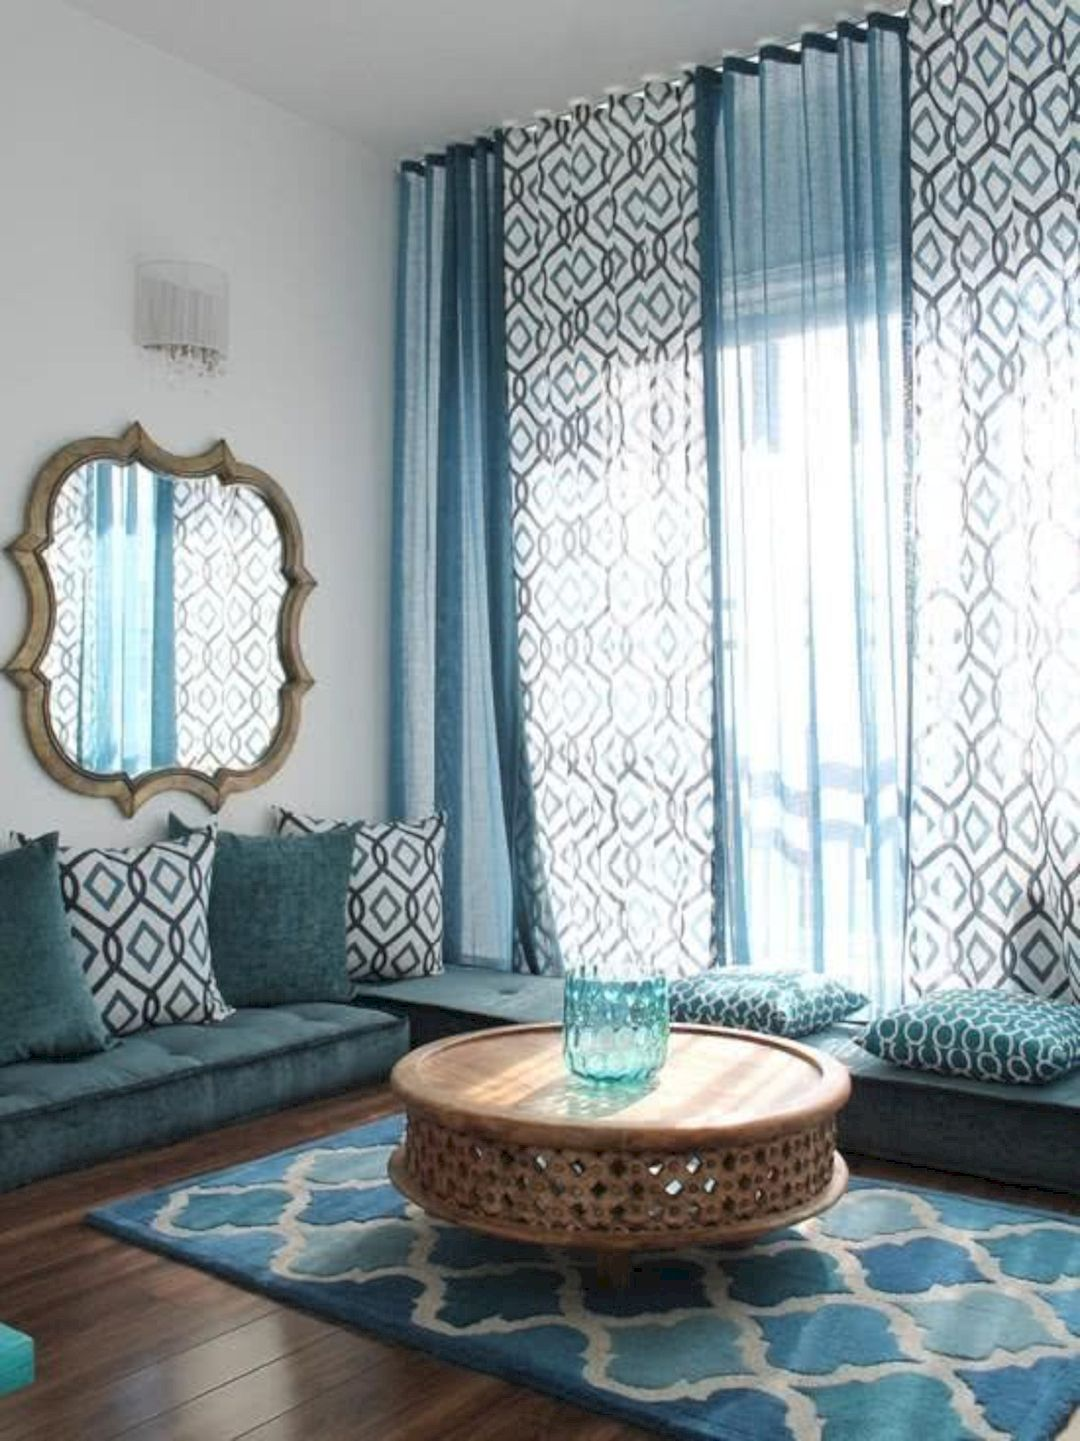 Attirant 16 Moroccan Home Decoration Ideas Https://www.futuristarchitecture.com/33728